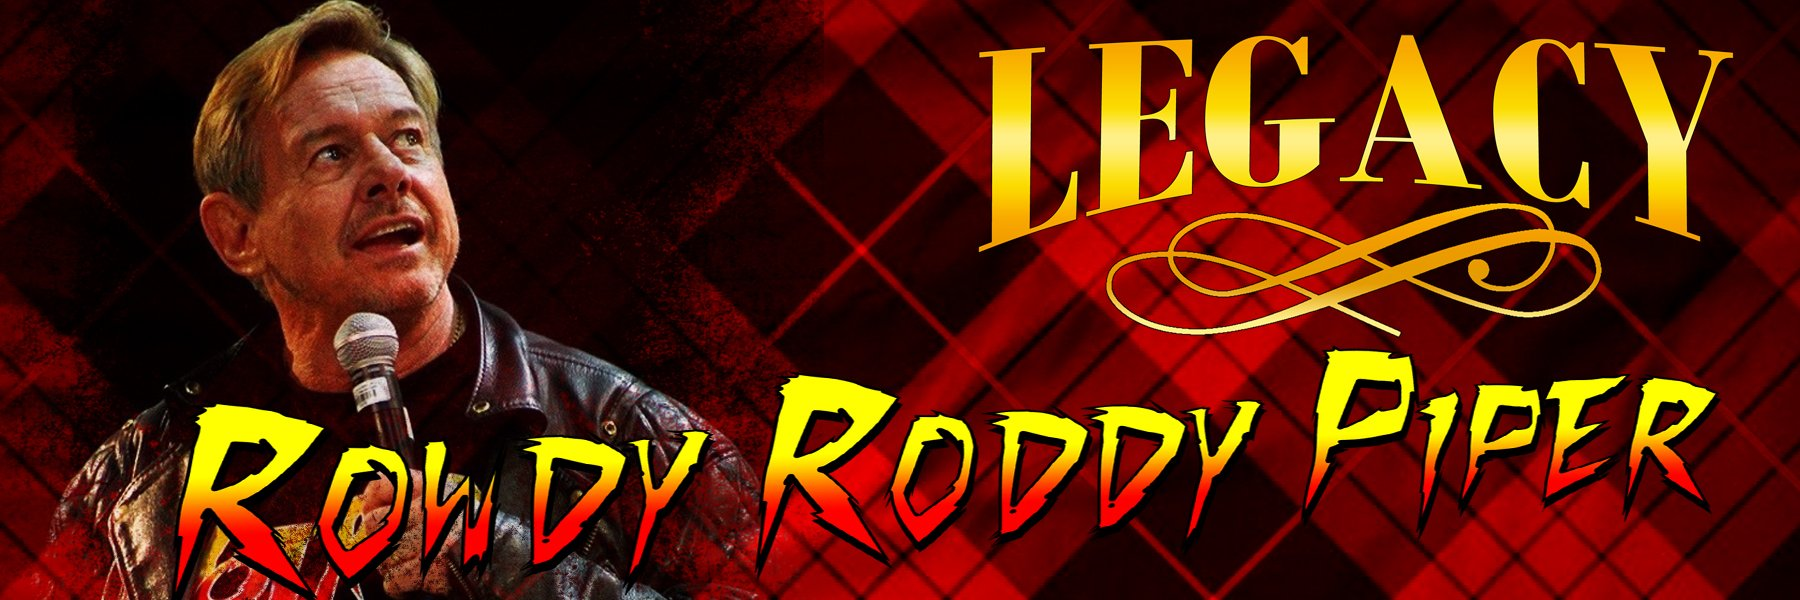 NEW! Roddy & Over 60 Of His Friends Tell The Story Of His Iconic Career!